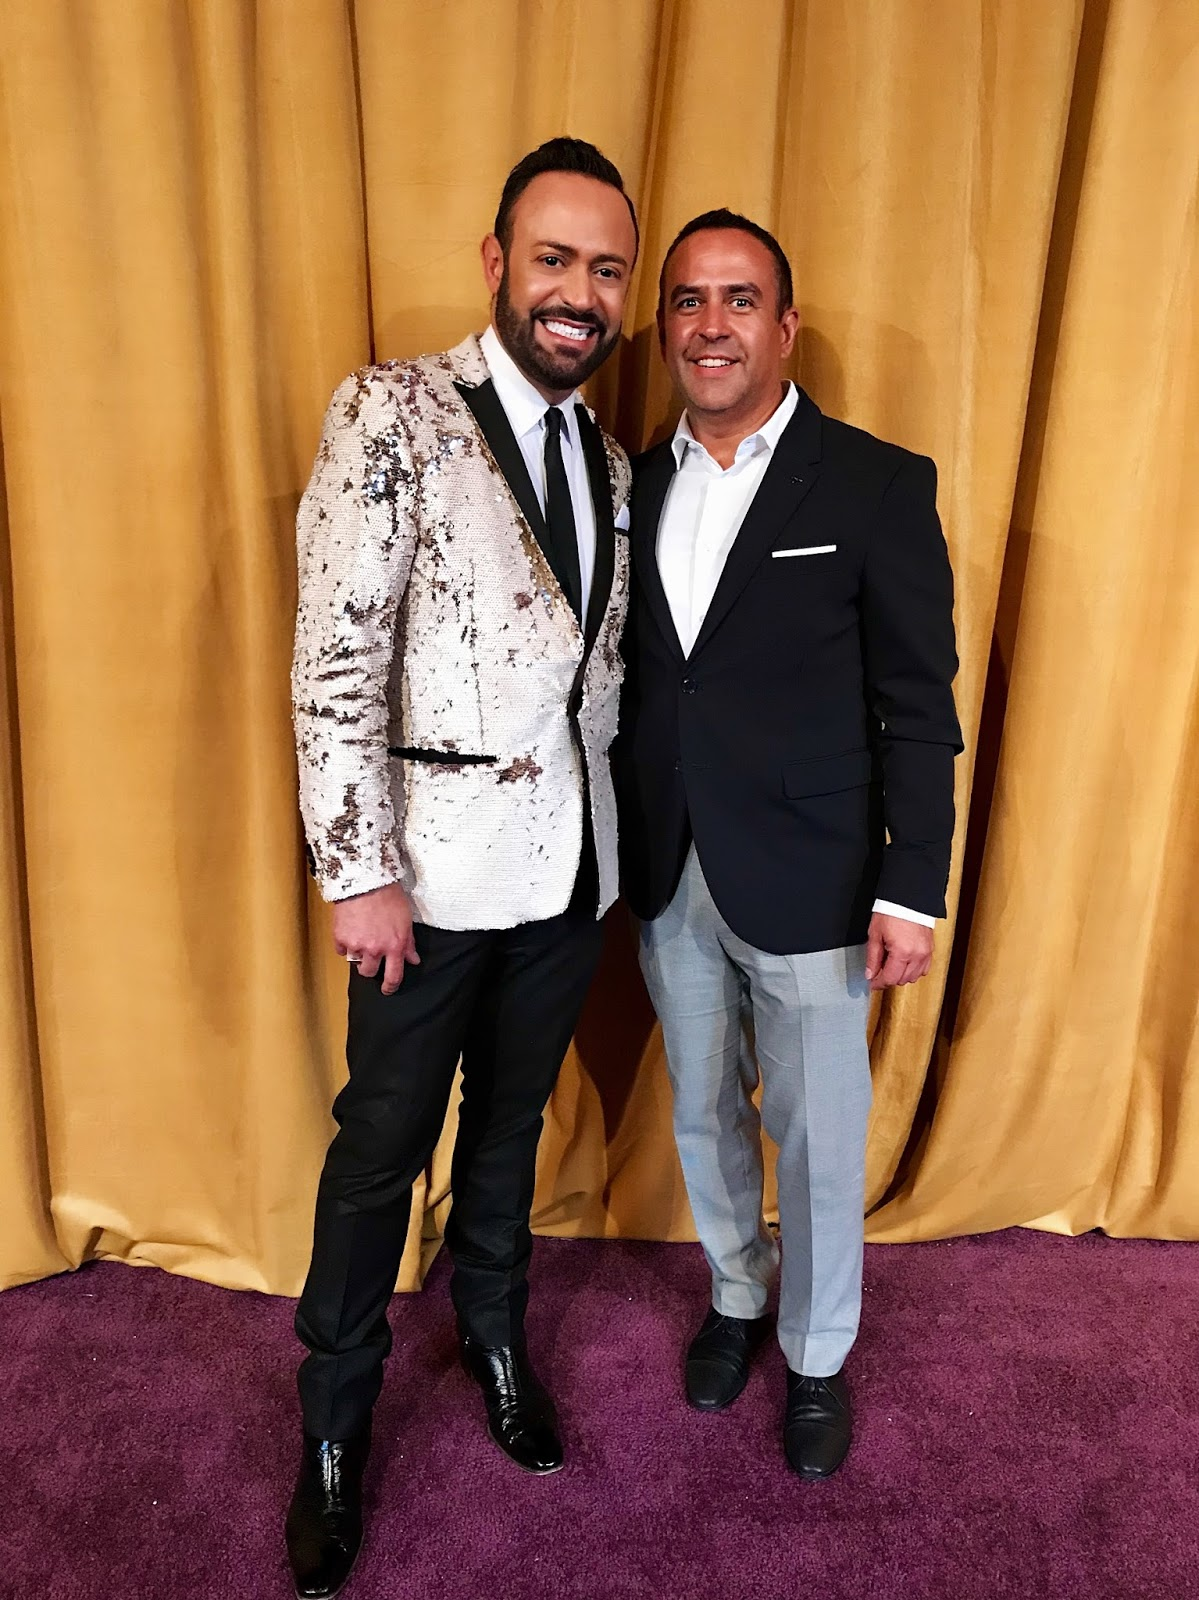 Fidmdm debut 2018 vip tent meet and greet blog recap nick i was so excited and humbled when one of my oldest friends by oldest i mean how long we have known each other louie anchondo stopped by my vip m4hsunfo